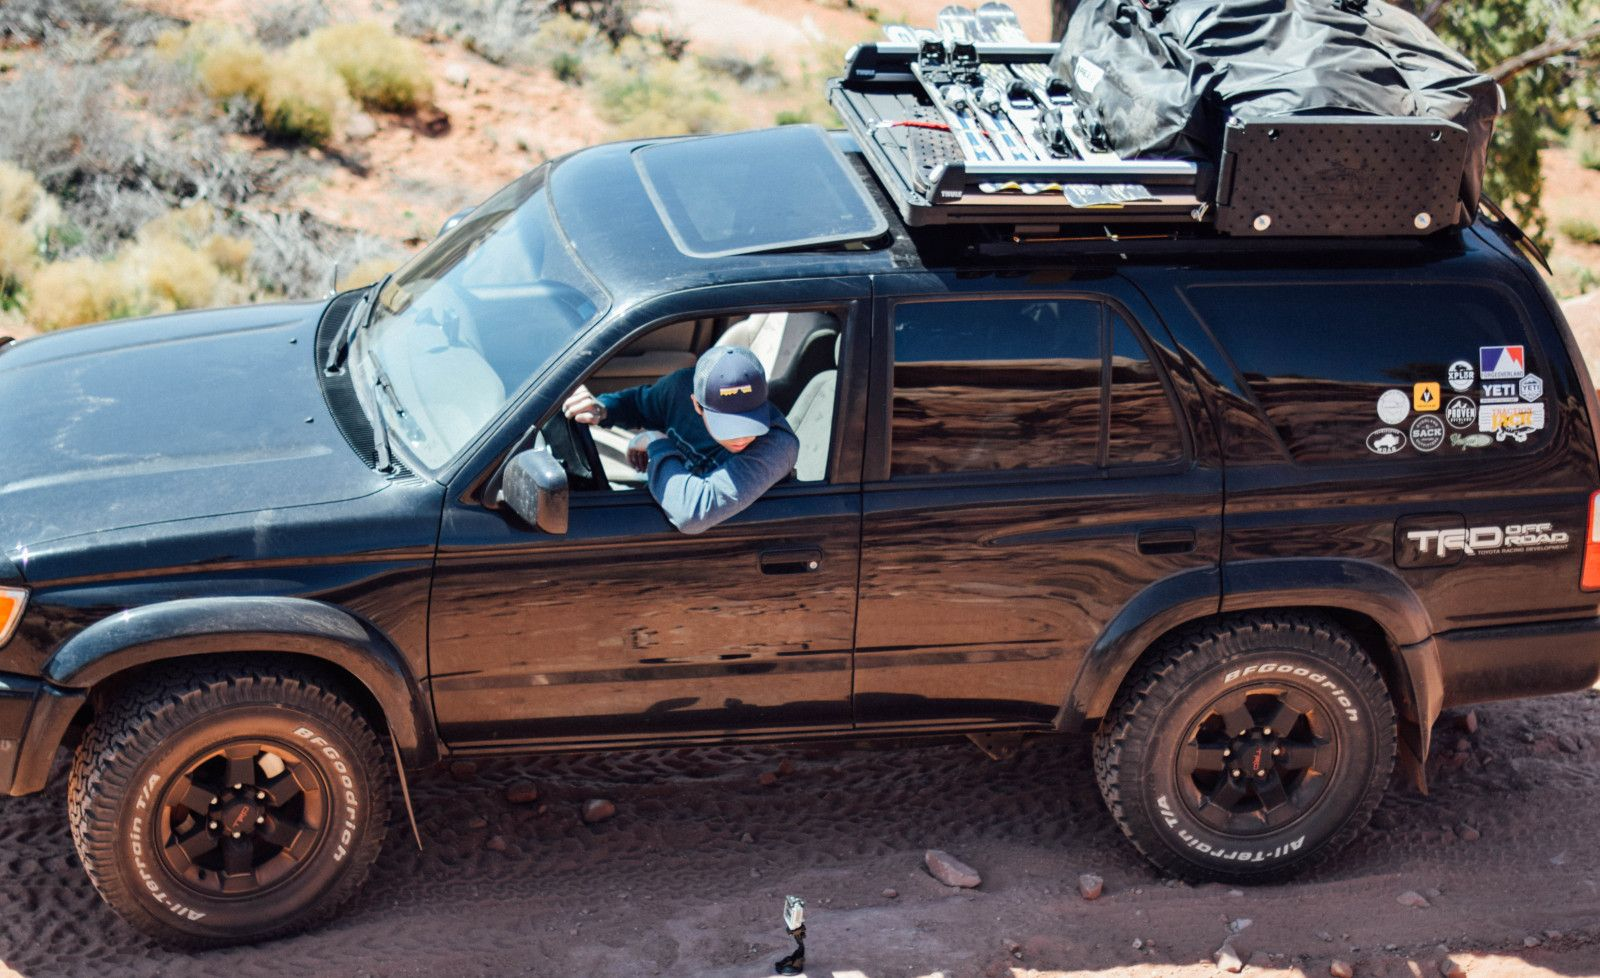 Labrak 3rd Generation Roof Rack Review Roof Rack 4runner Expedition Gear